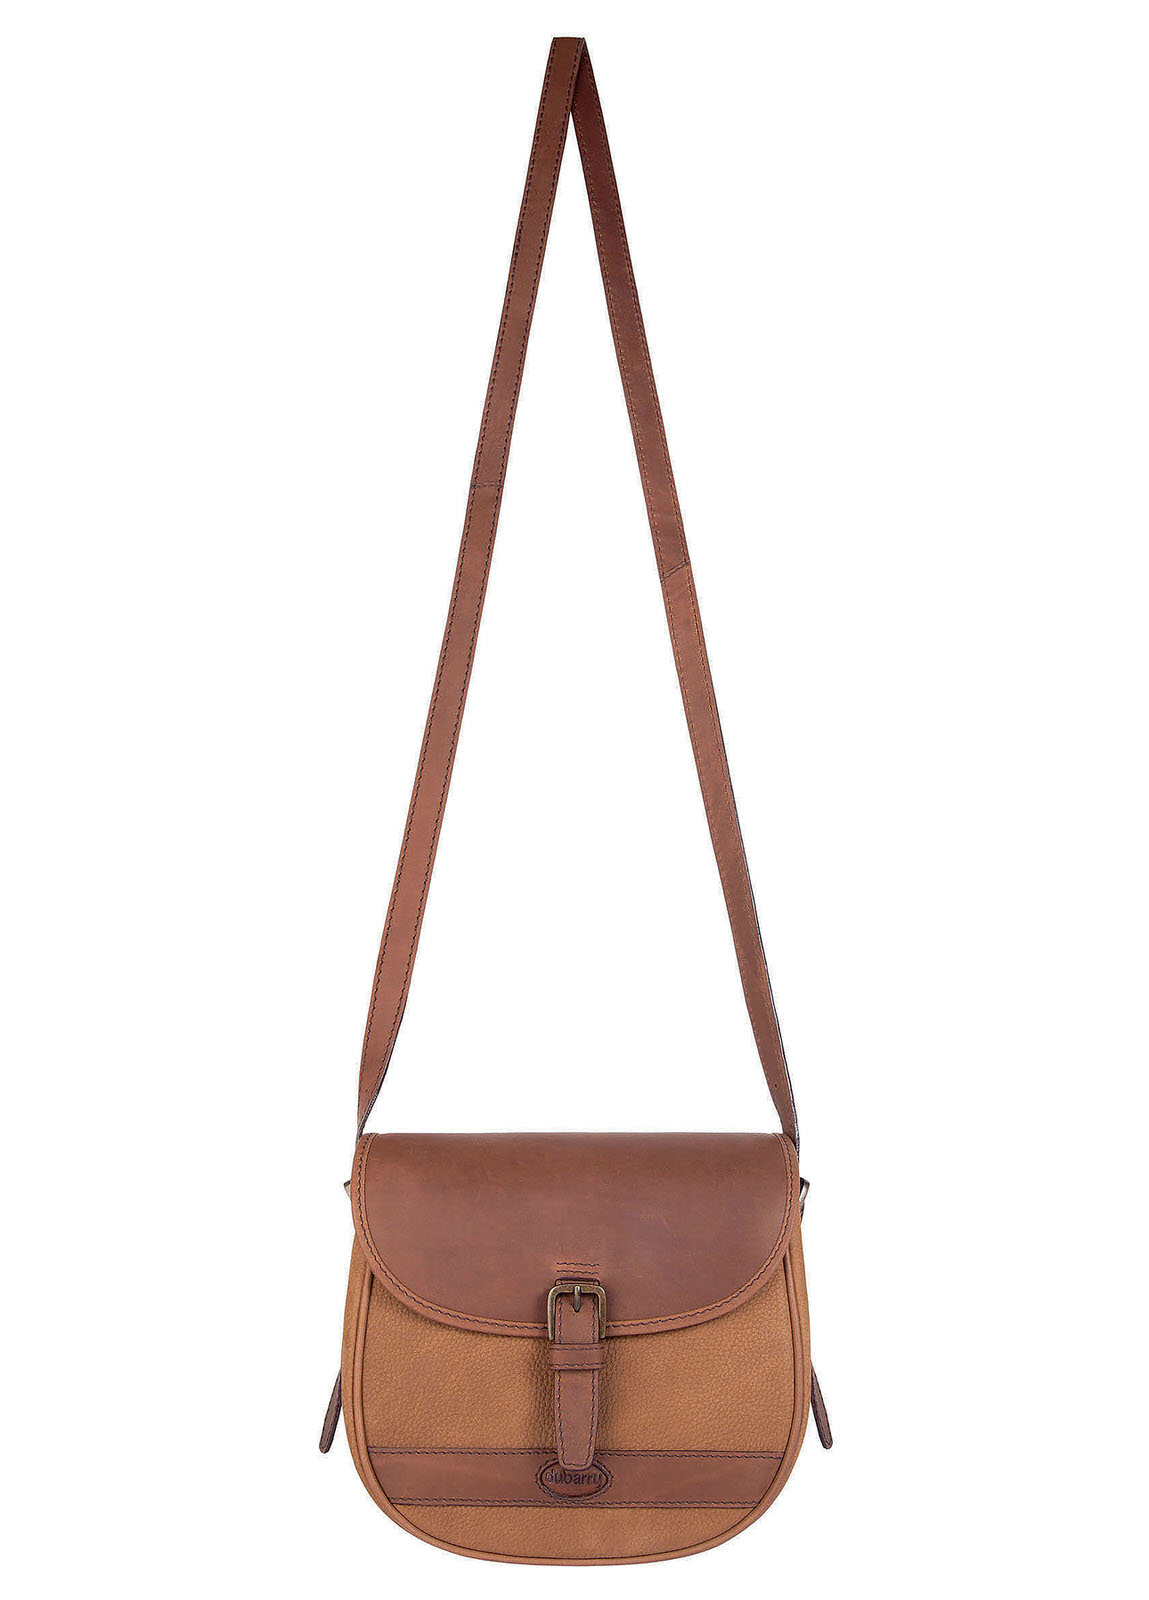 Clara_Leather_Saddle_bag_Brown_Image_1